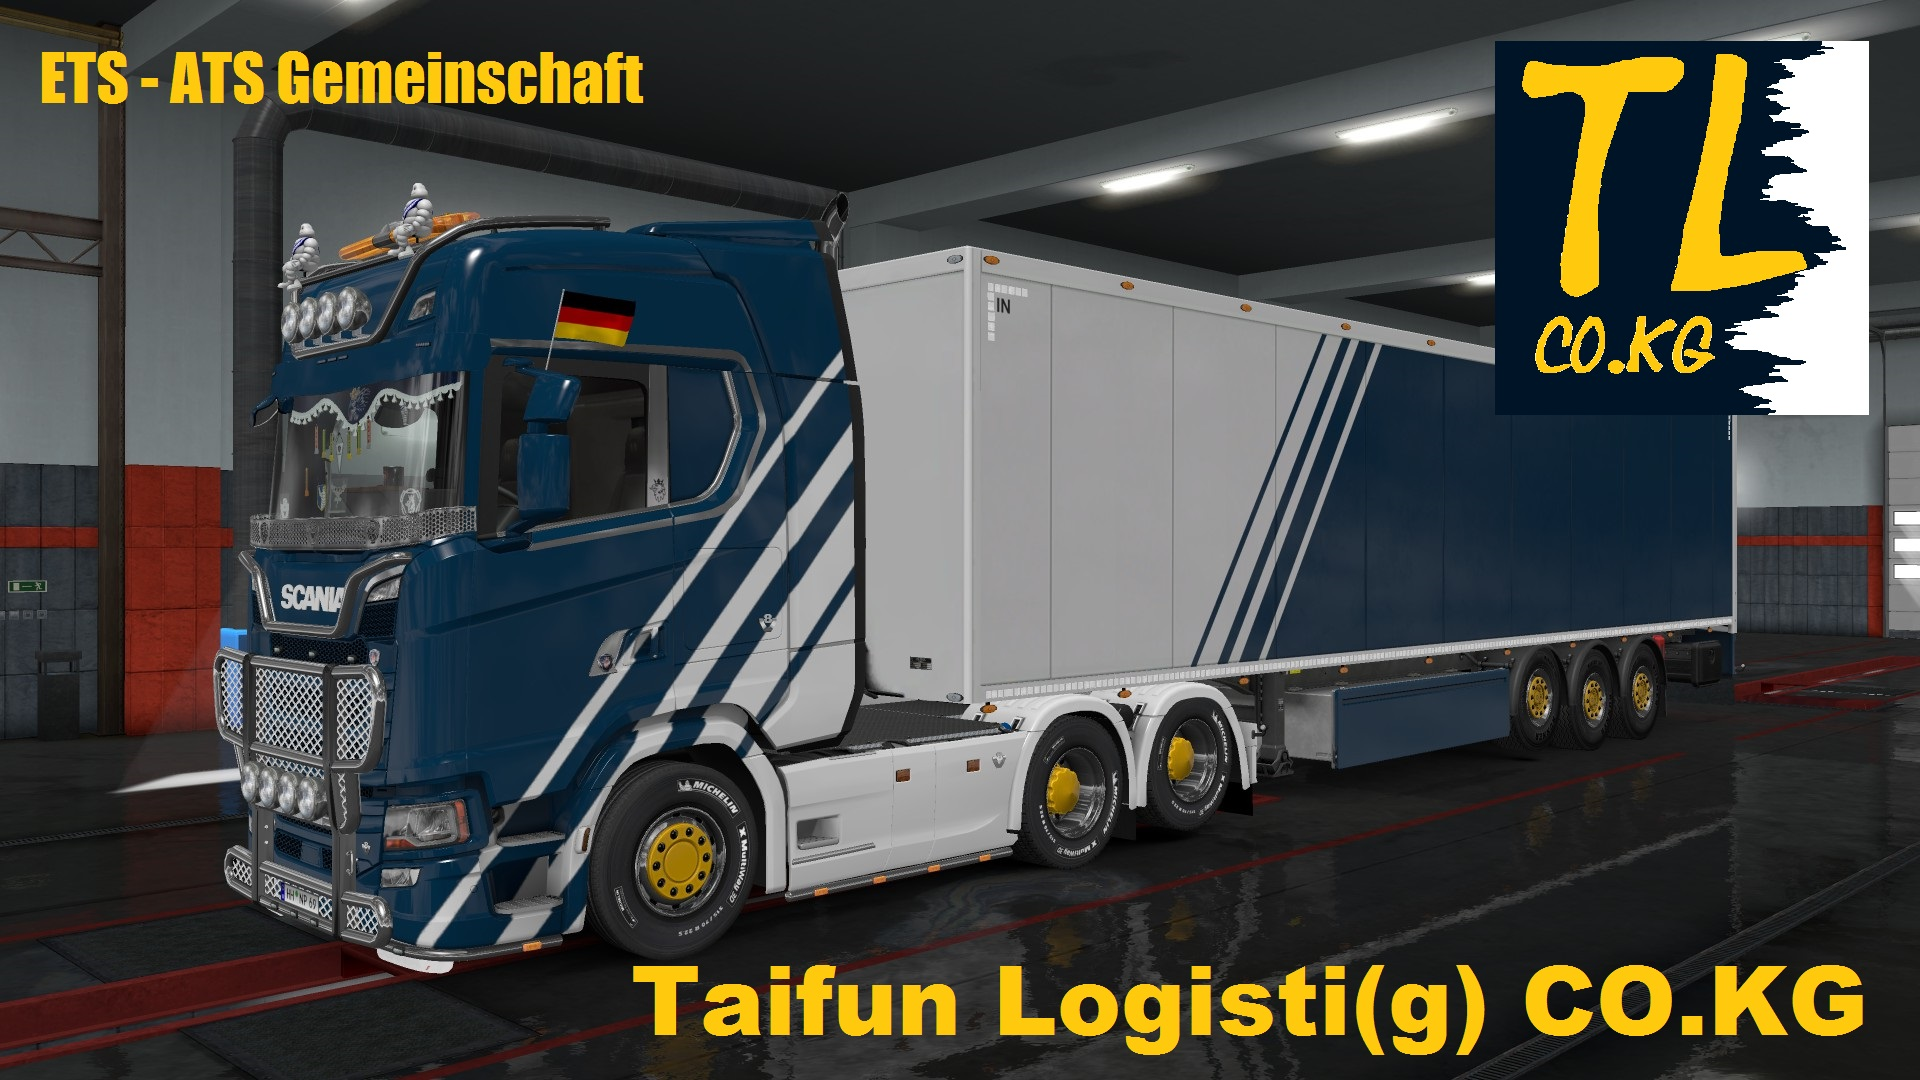 Taifun Logisti(g) CO.KG